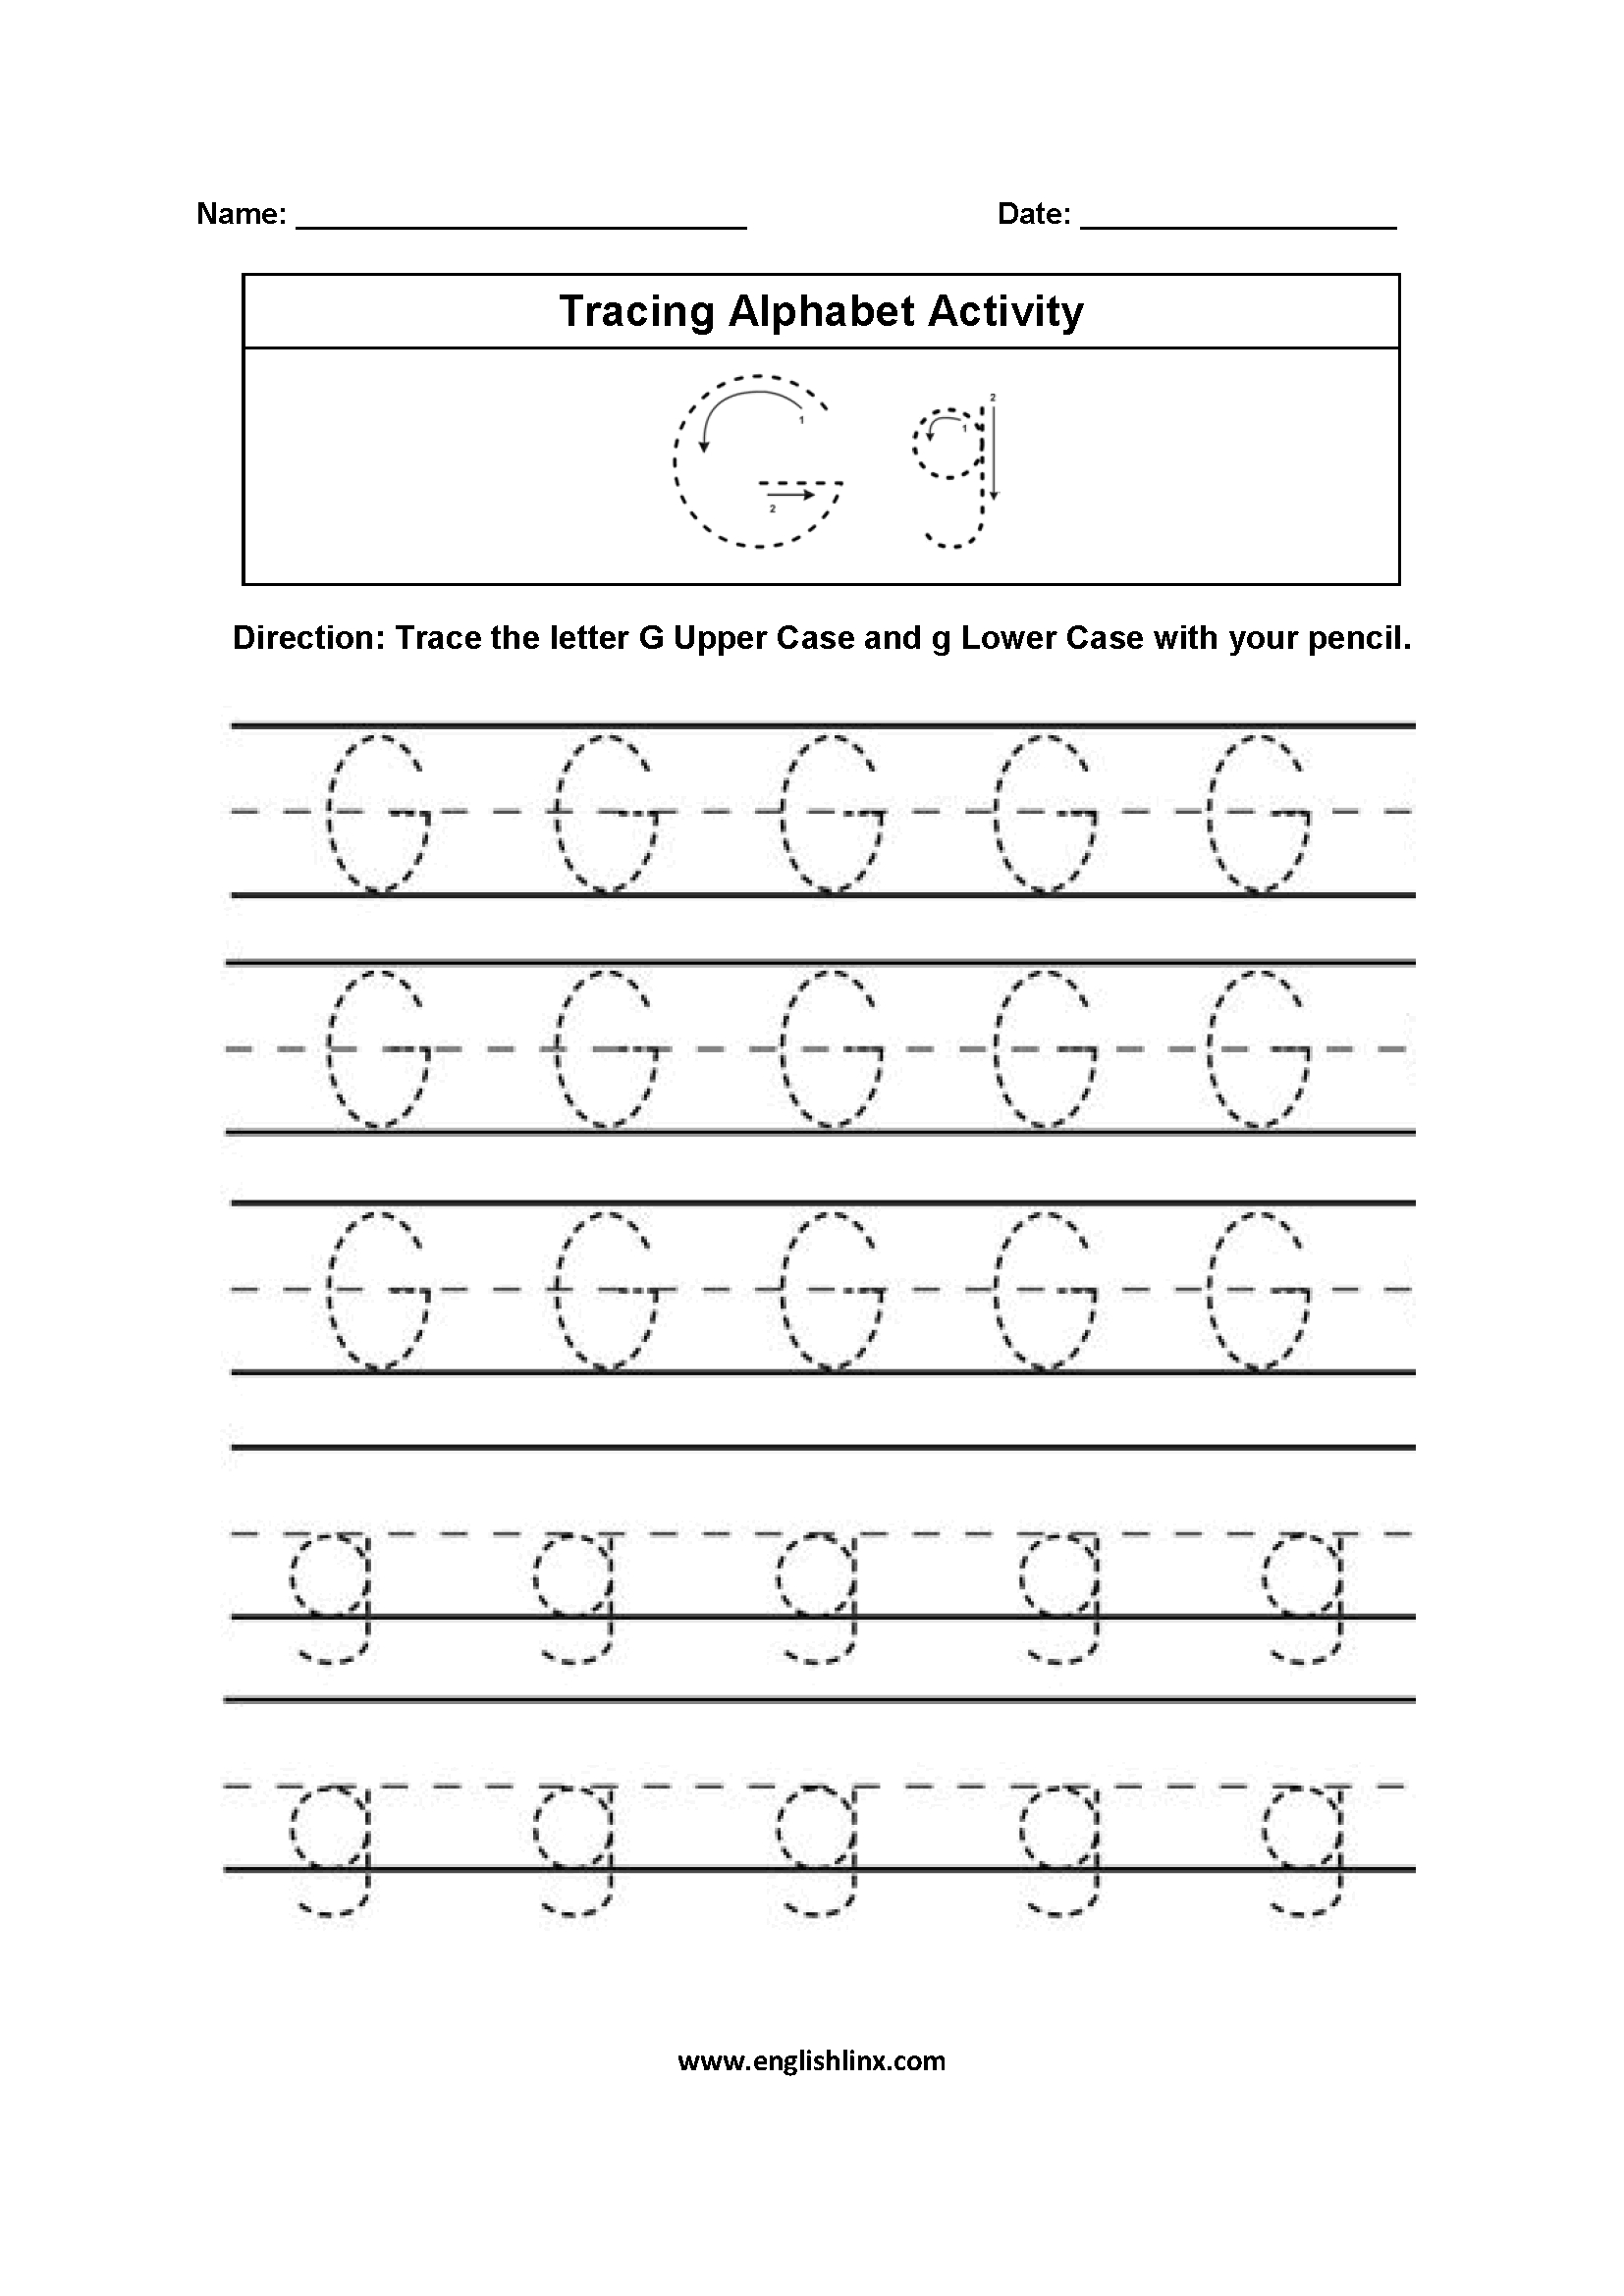 Alphabet Worksheets | Tracing Alphabet Worksheets throughout Letter G Tracing Sheet